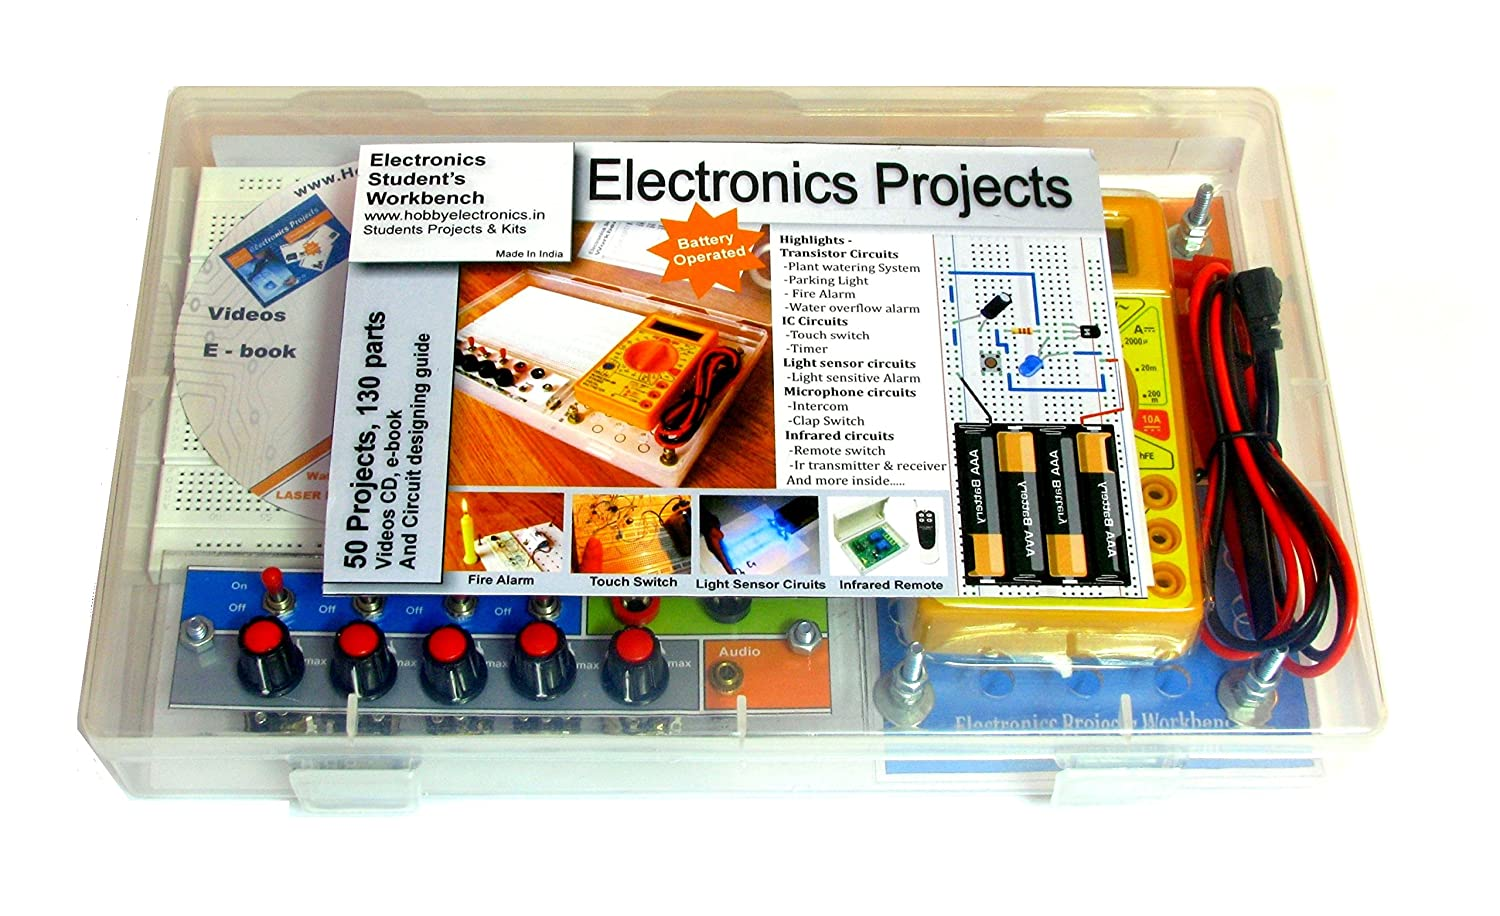 Deepak Enterprise Electronics Workbench Project Kit With 50 Projects Electrical And 120 Parts Office Products